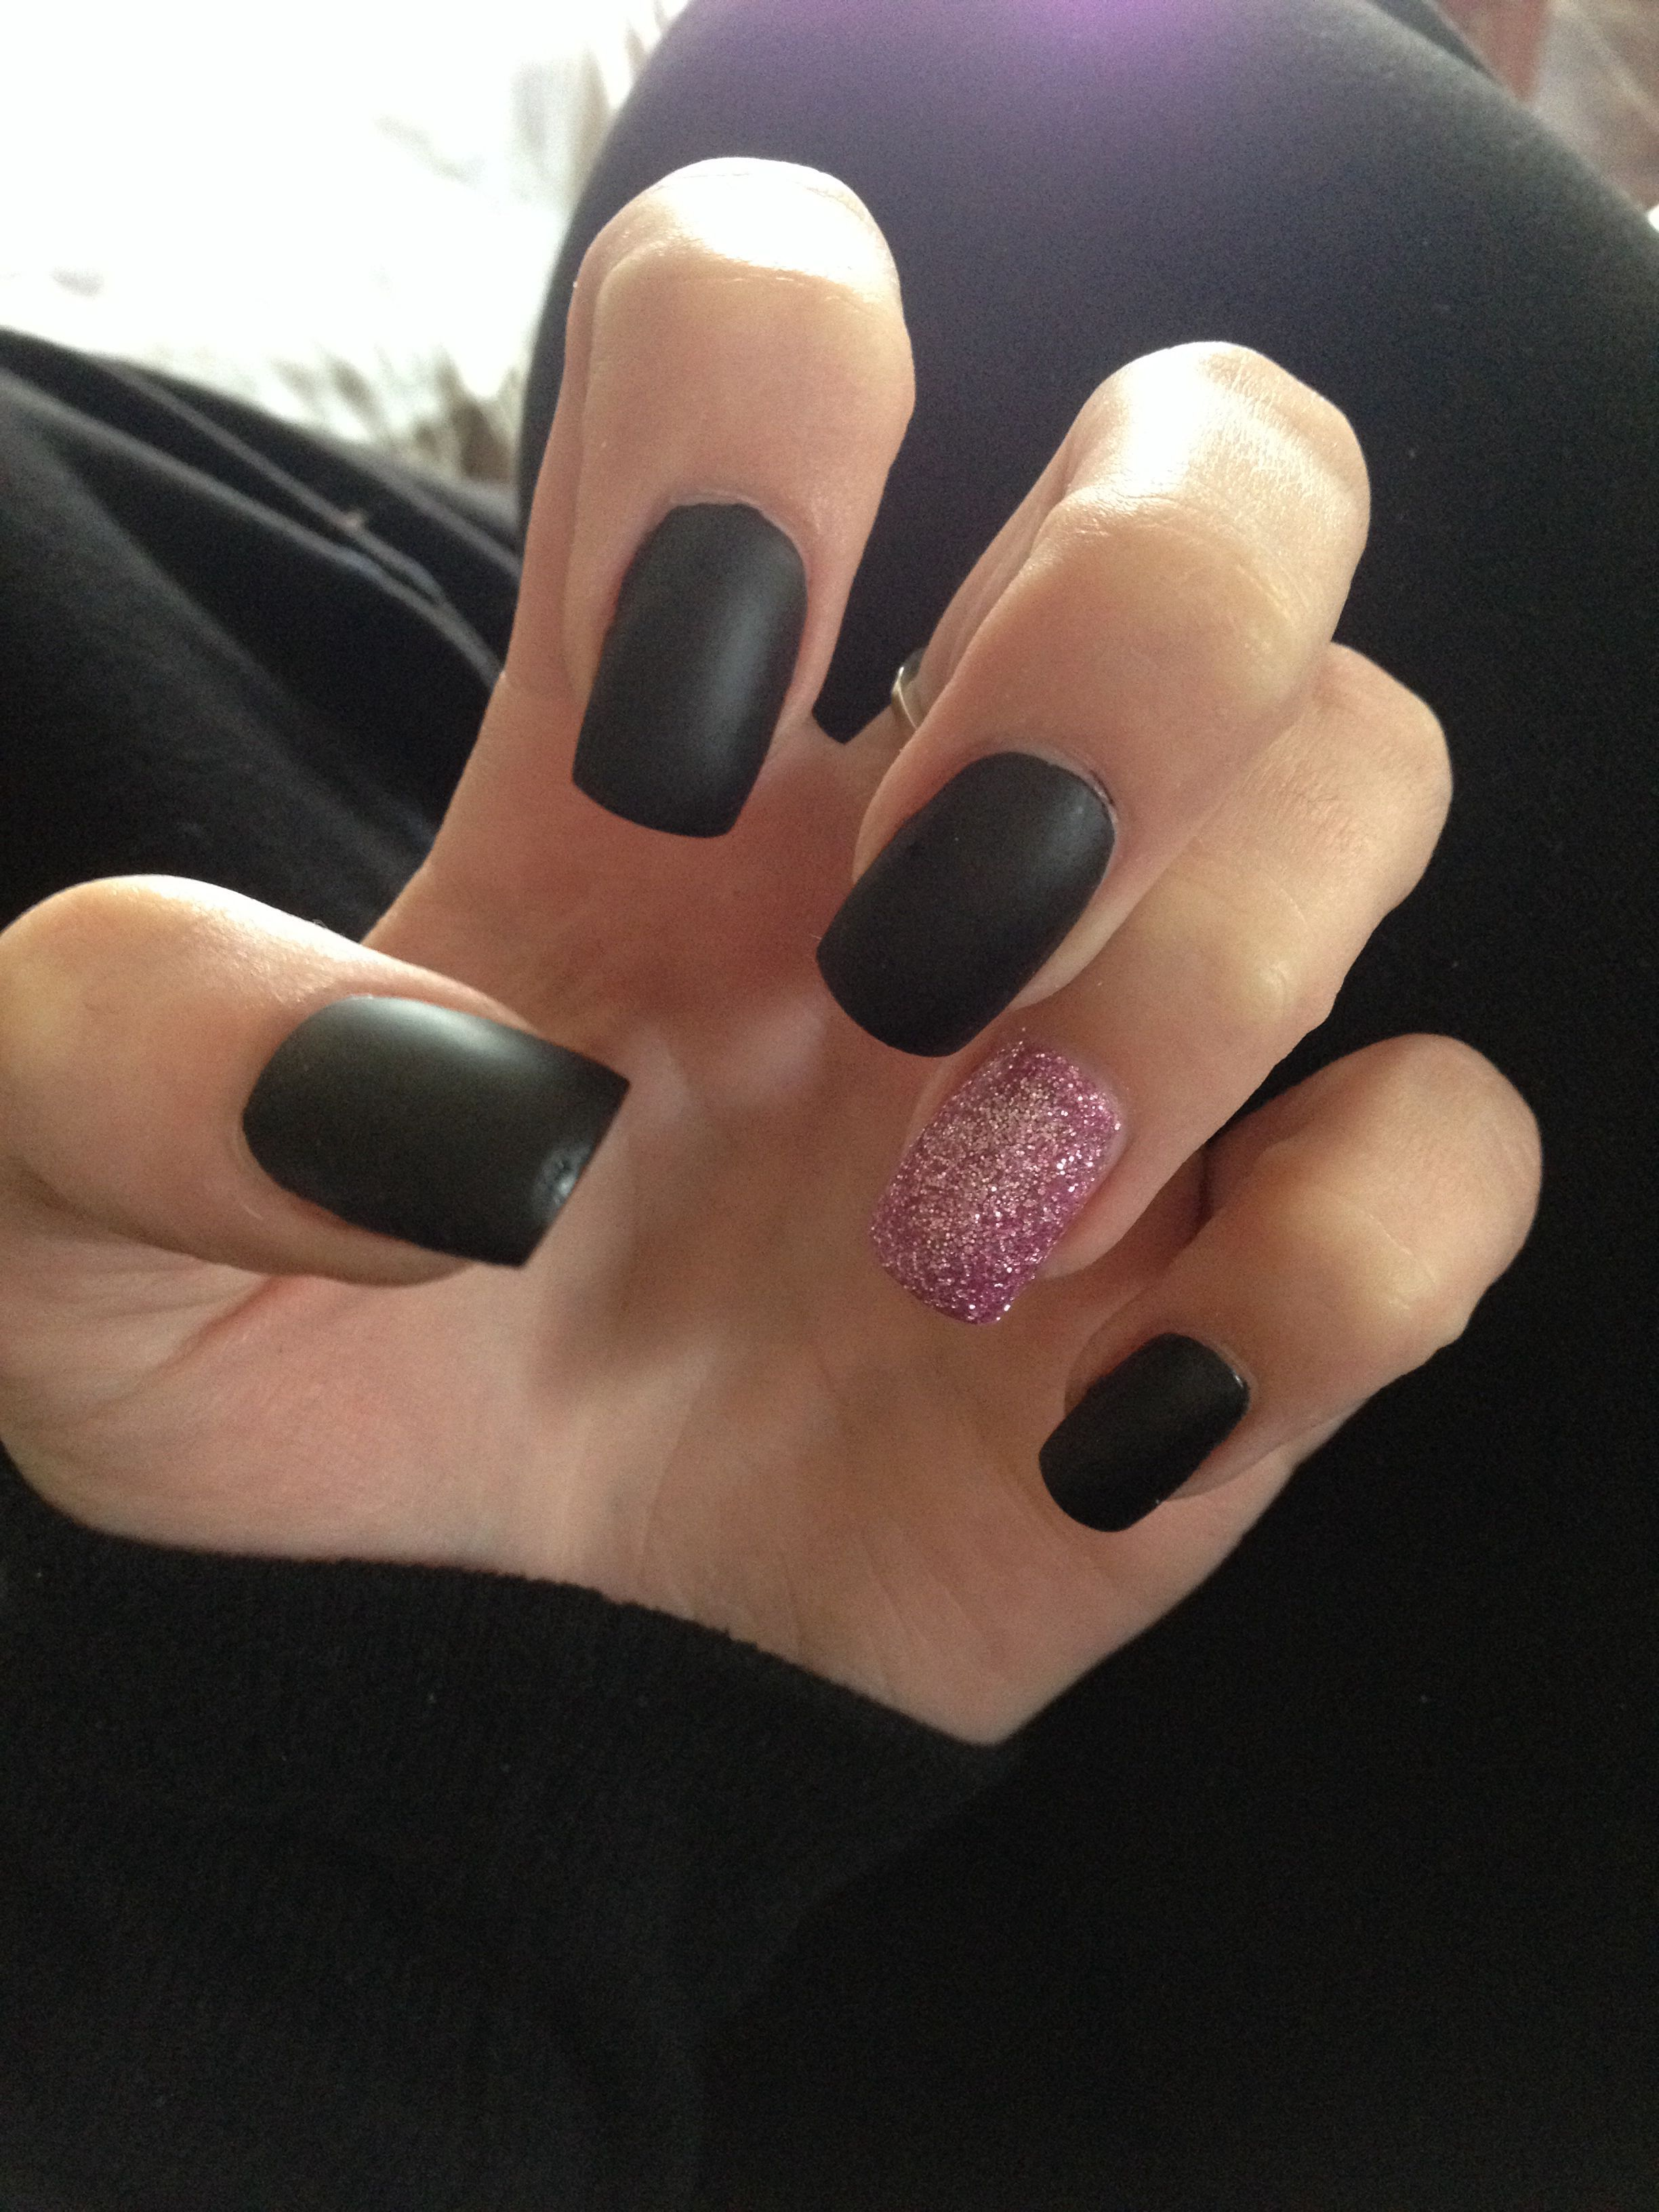 Matte black nails with pink glitter | Nails | Pinterest | Matte ...